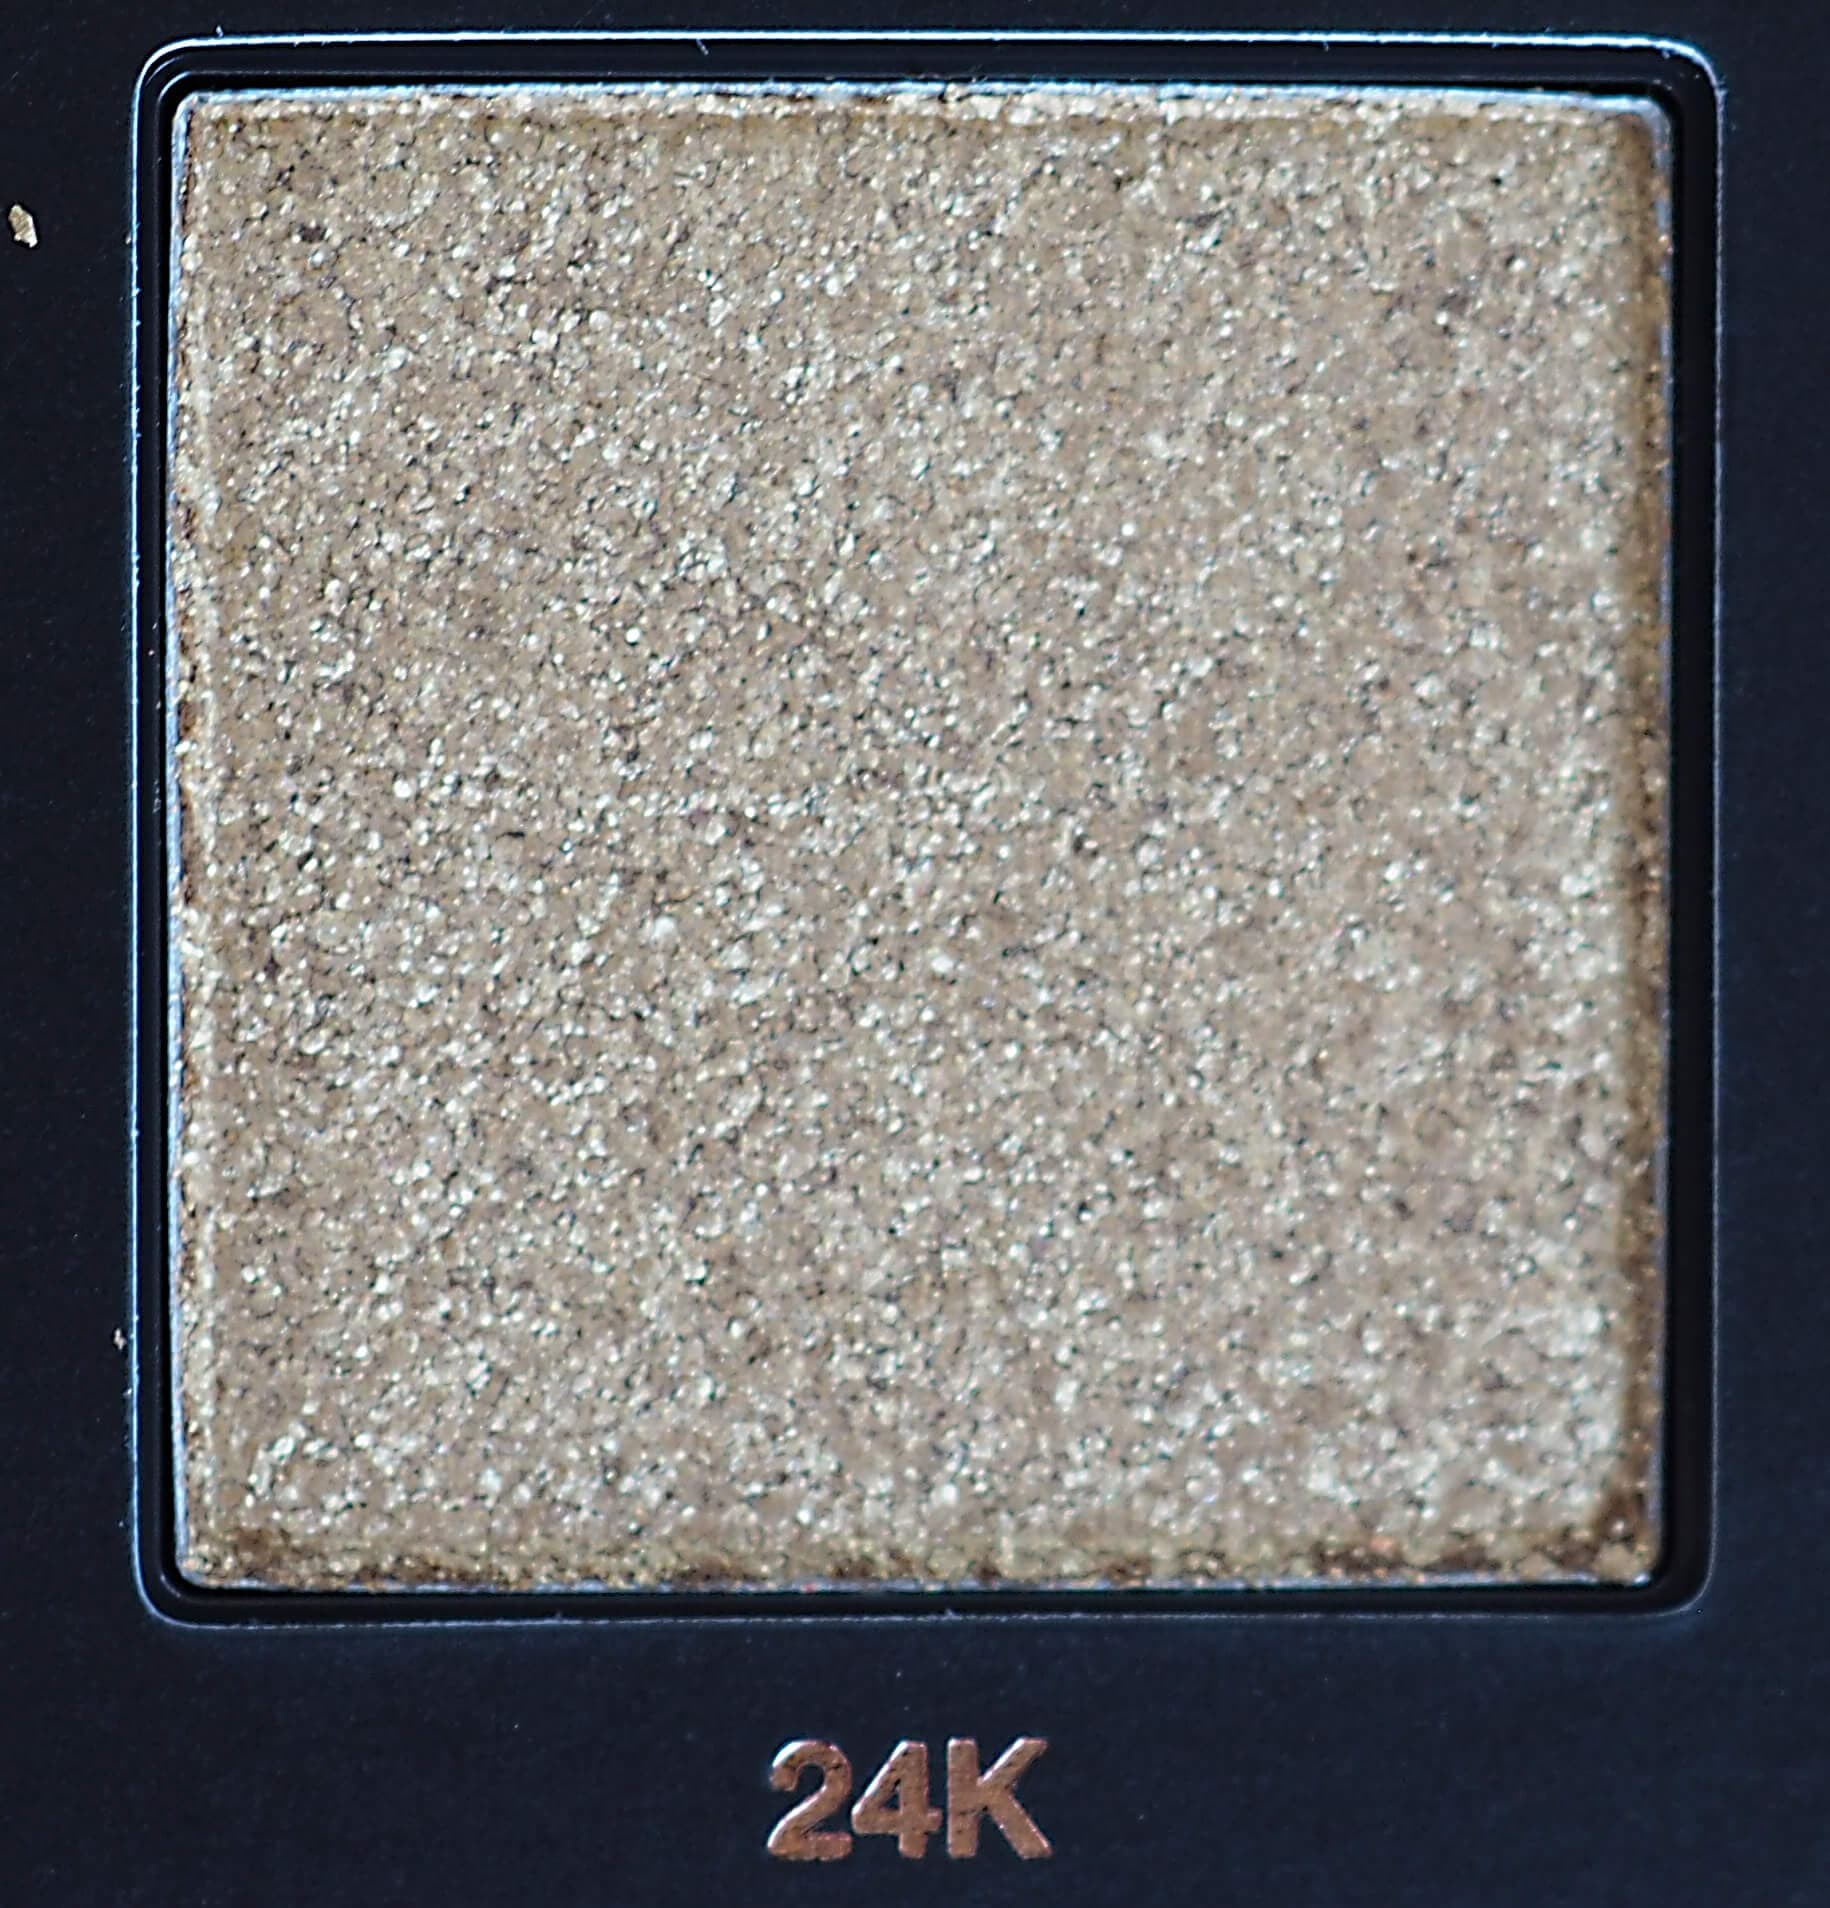 24K HUDA ROSE GOLD EDITION